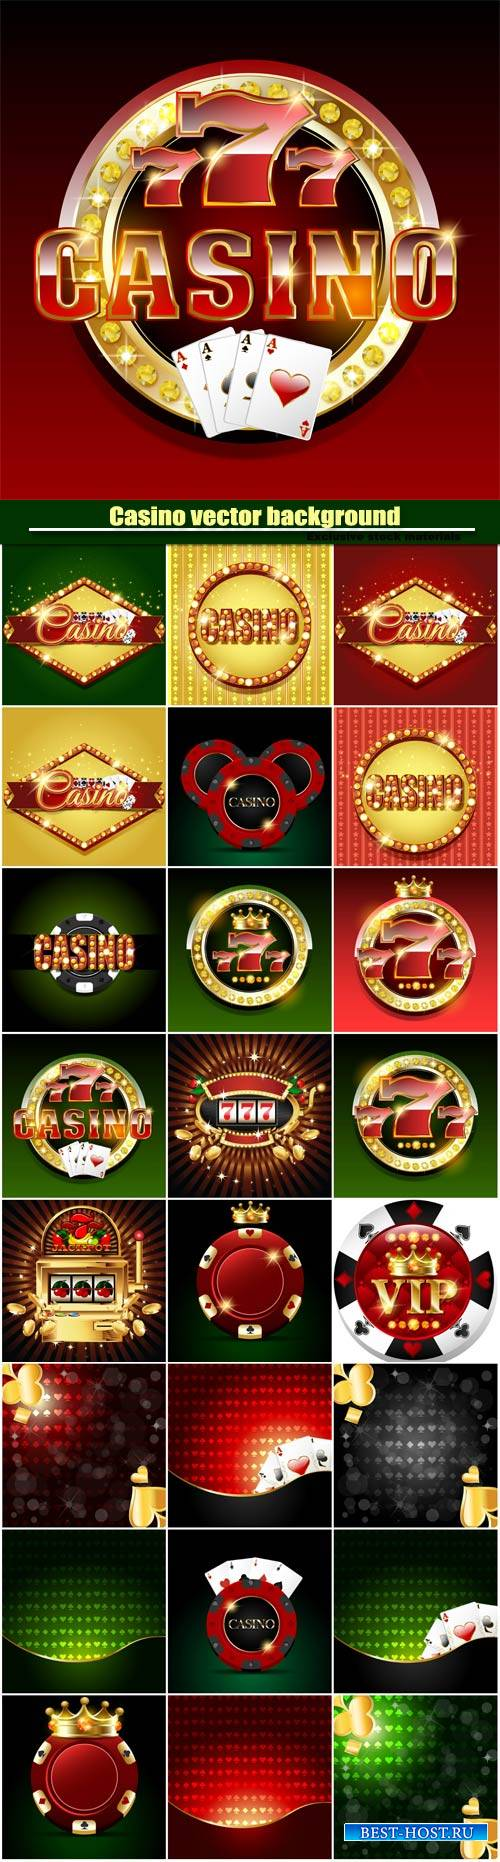 Casino vector background, slot machine on shiny background